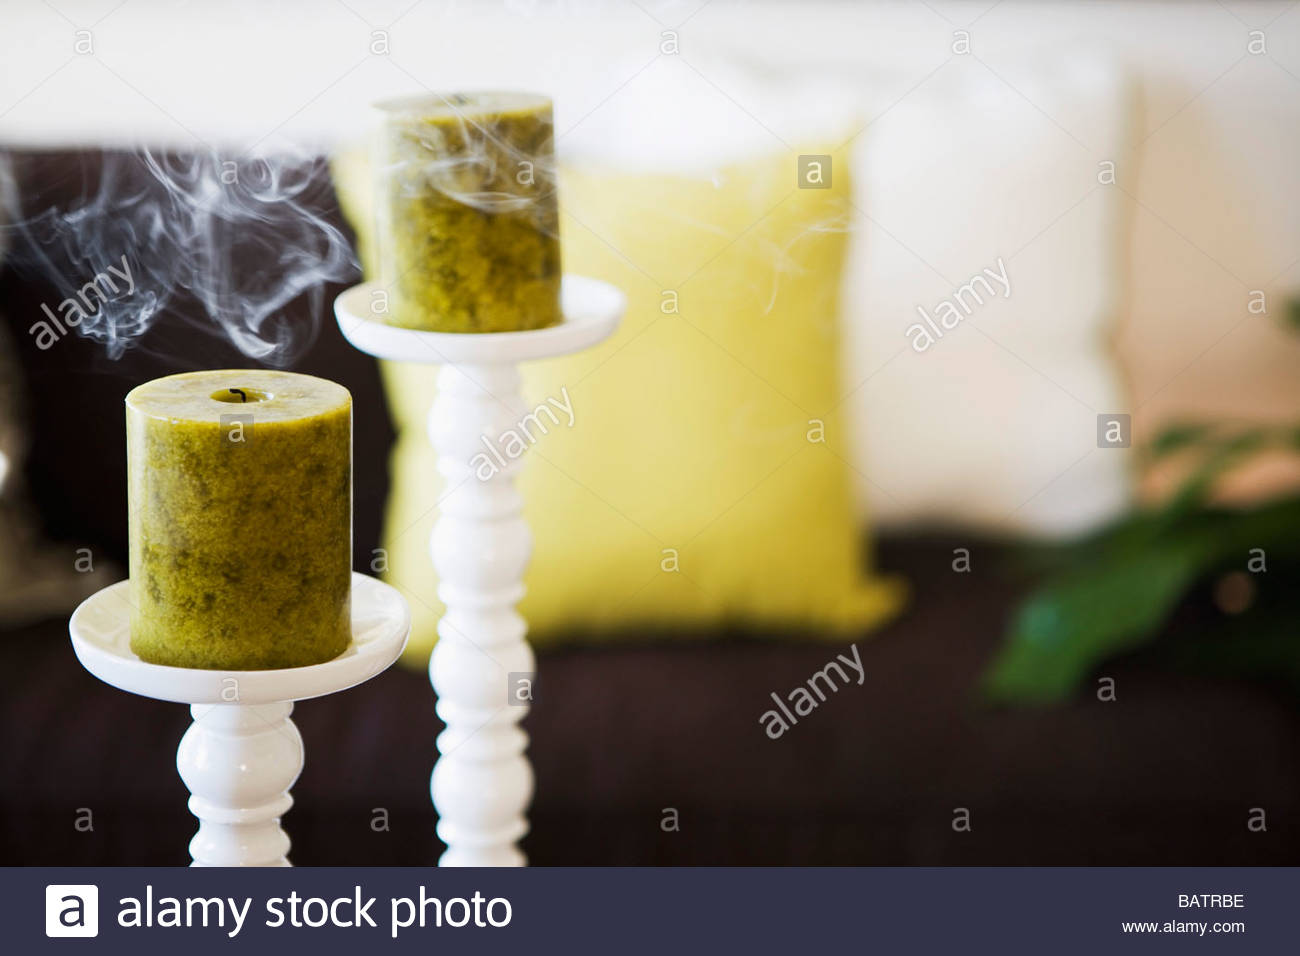 Two Unlit Candles with Smoke on Tall Candlesticks Stock Photo